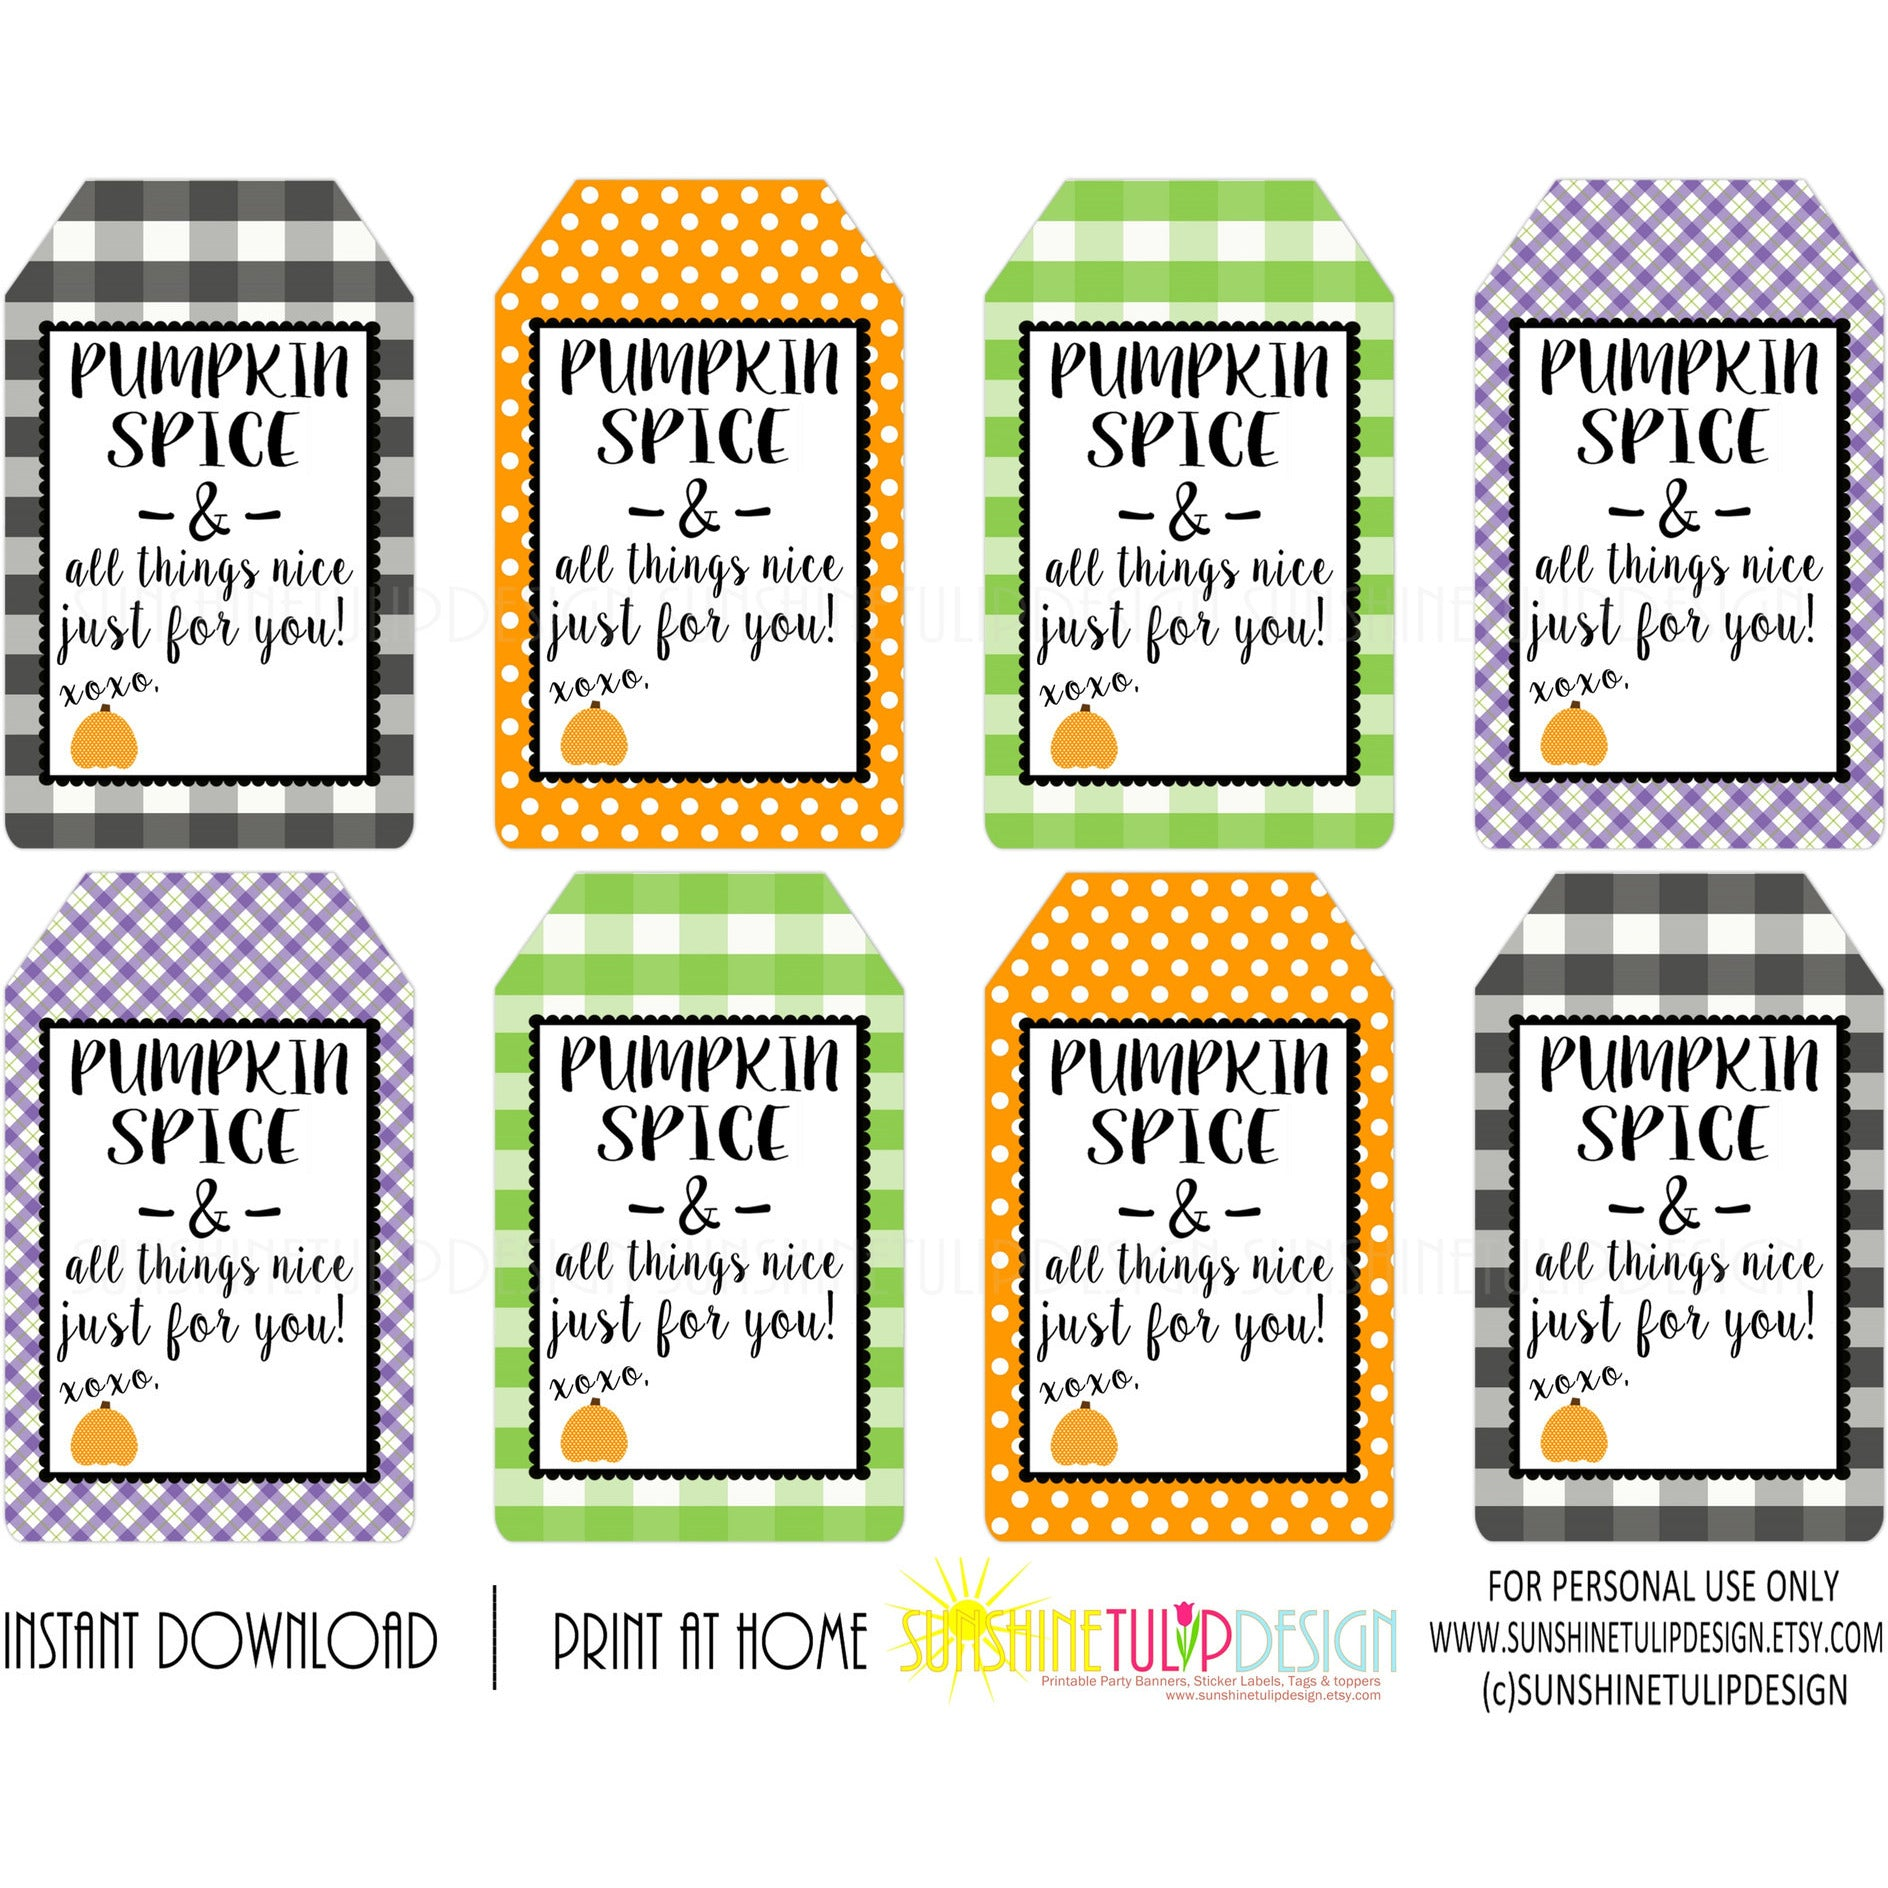 picture about Teacher Appreciation Tags Printable identify Pumpkin Spice Anything at all Good Tags, Printable Instructor Appreciation HALLOWEEN tags, Pumpkin Spice Present Tags as a result of SUNSHINETULIPDESIGN